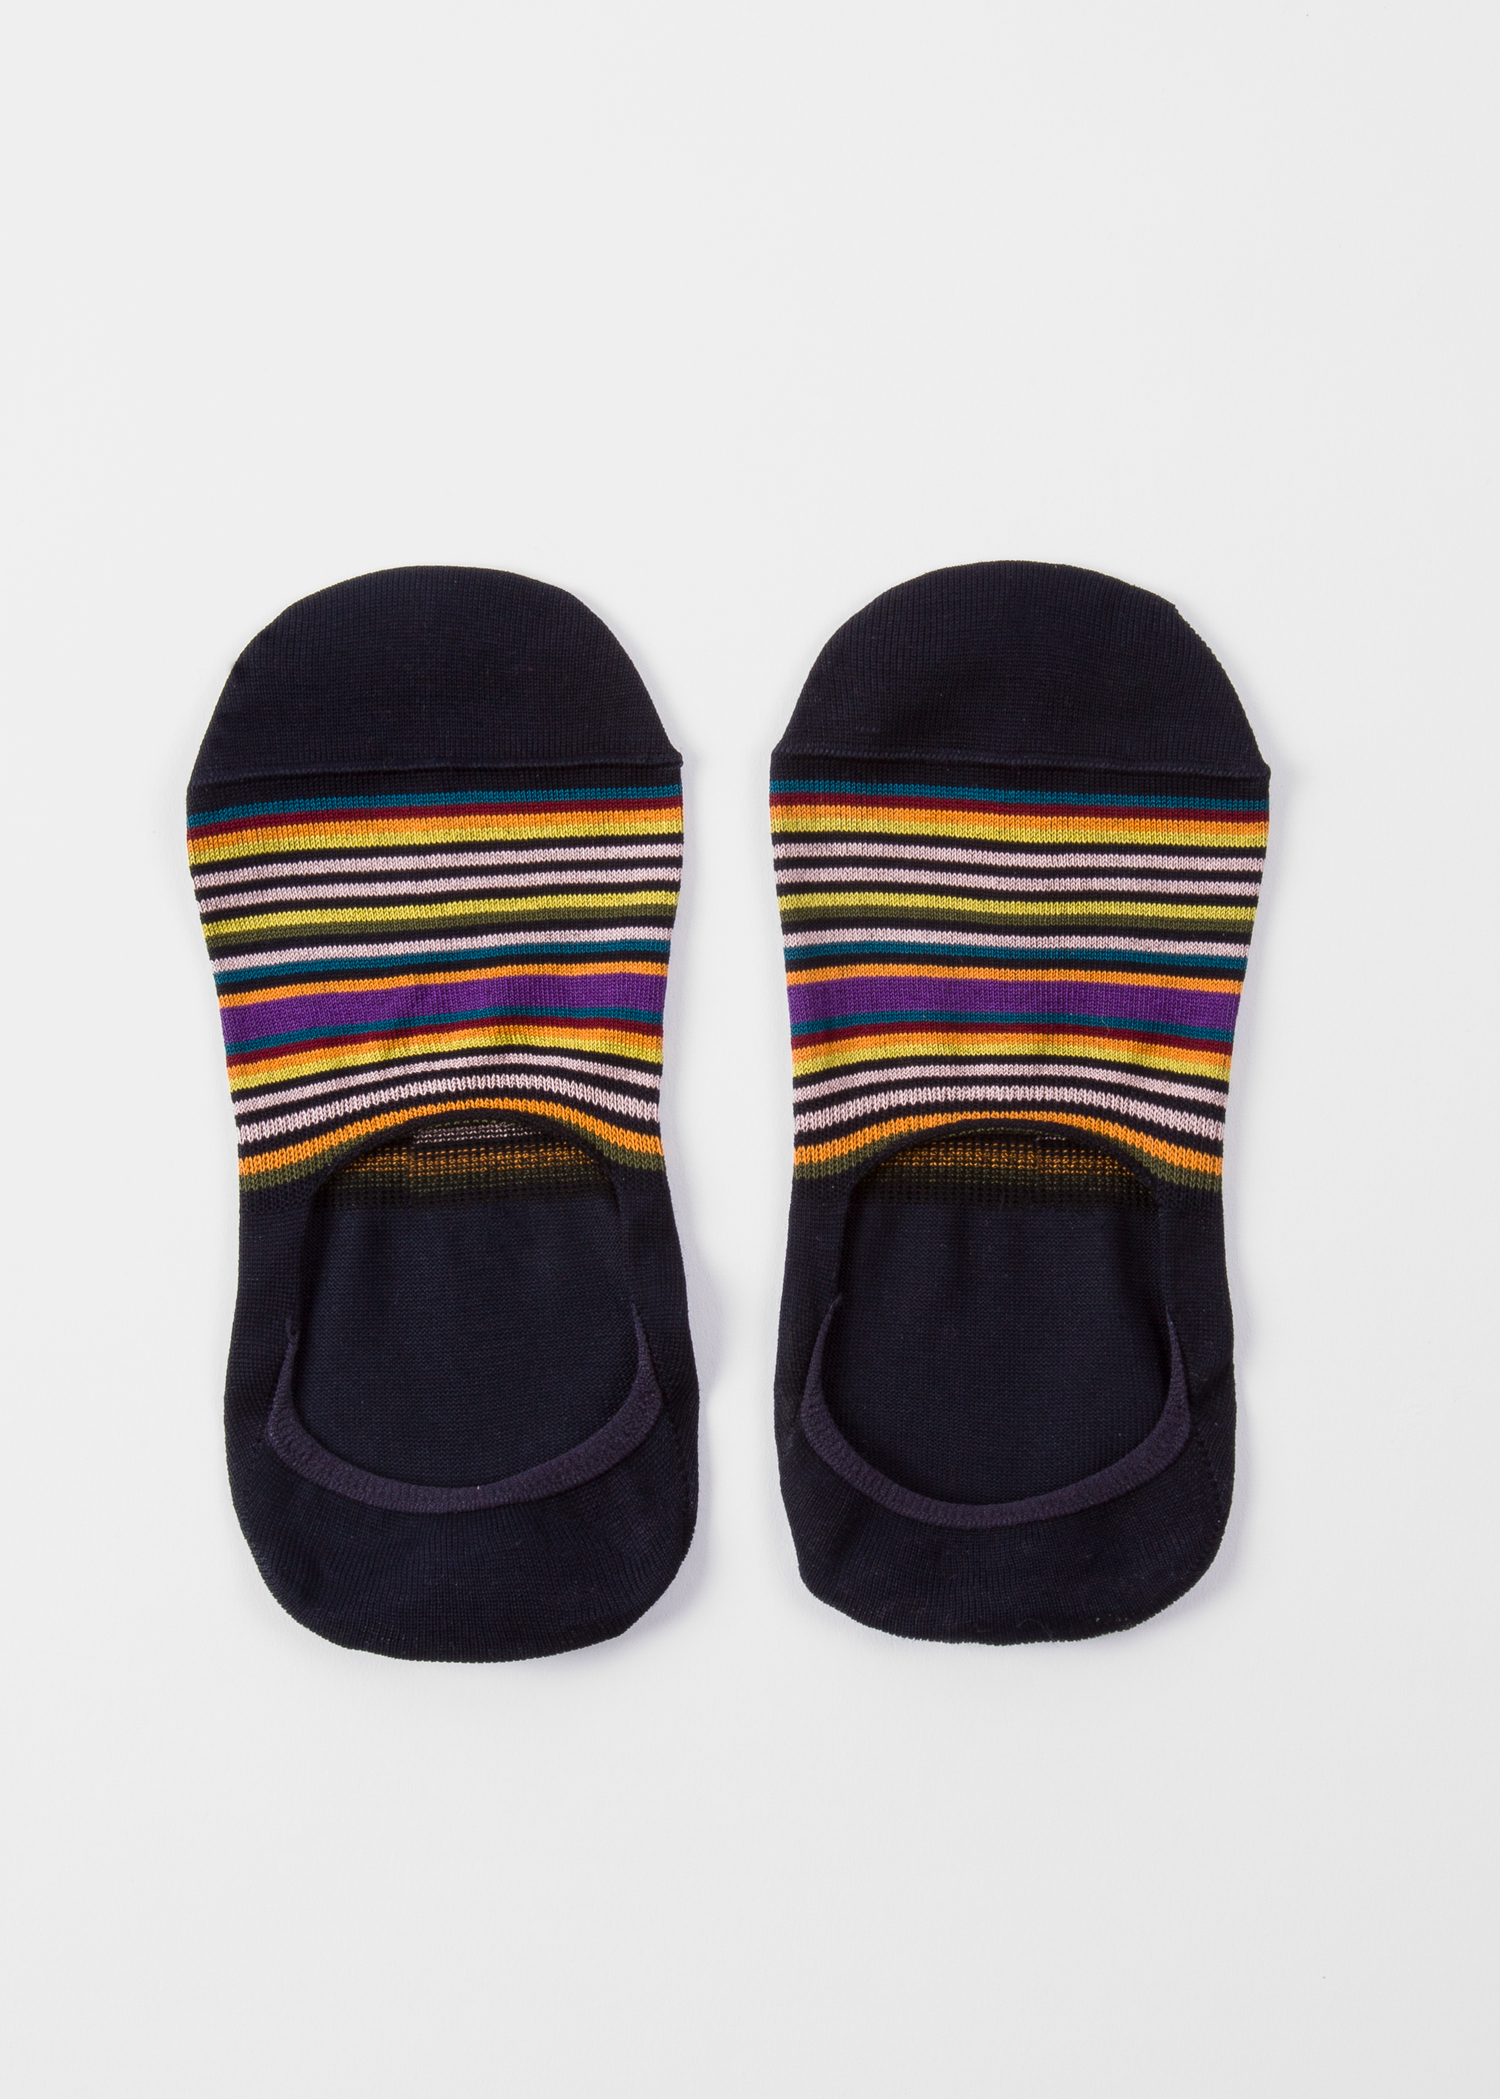 52b2667c3f4 Pair view - Women s Dark Navy Multi-Colour Striped Loafer Socks Paul Smith